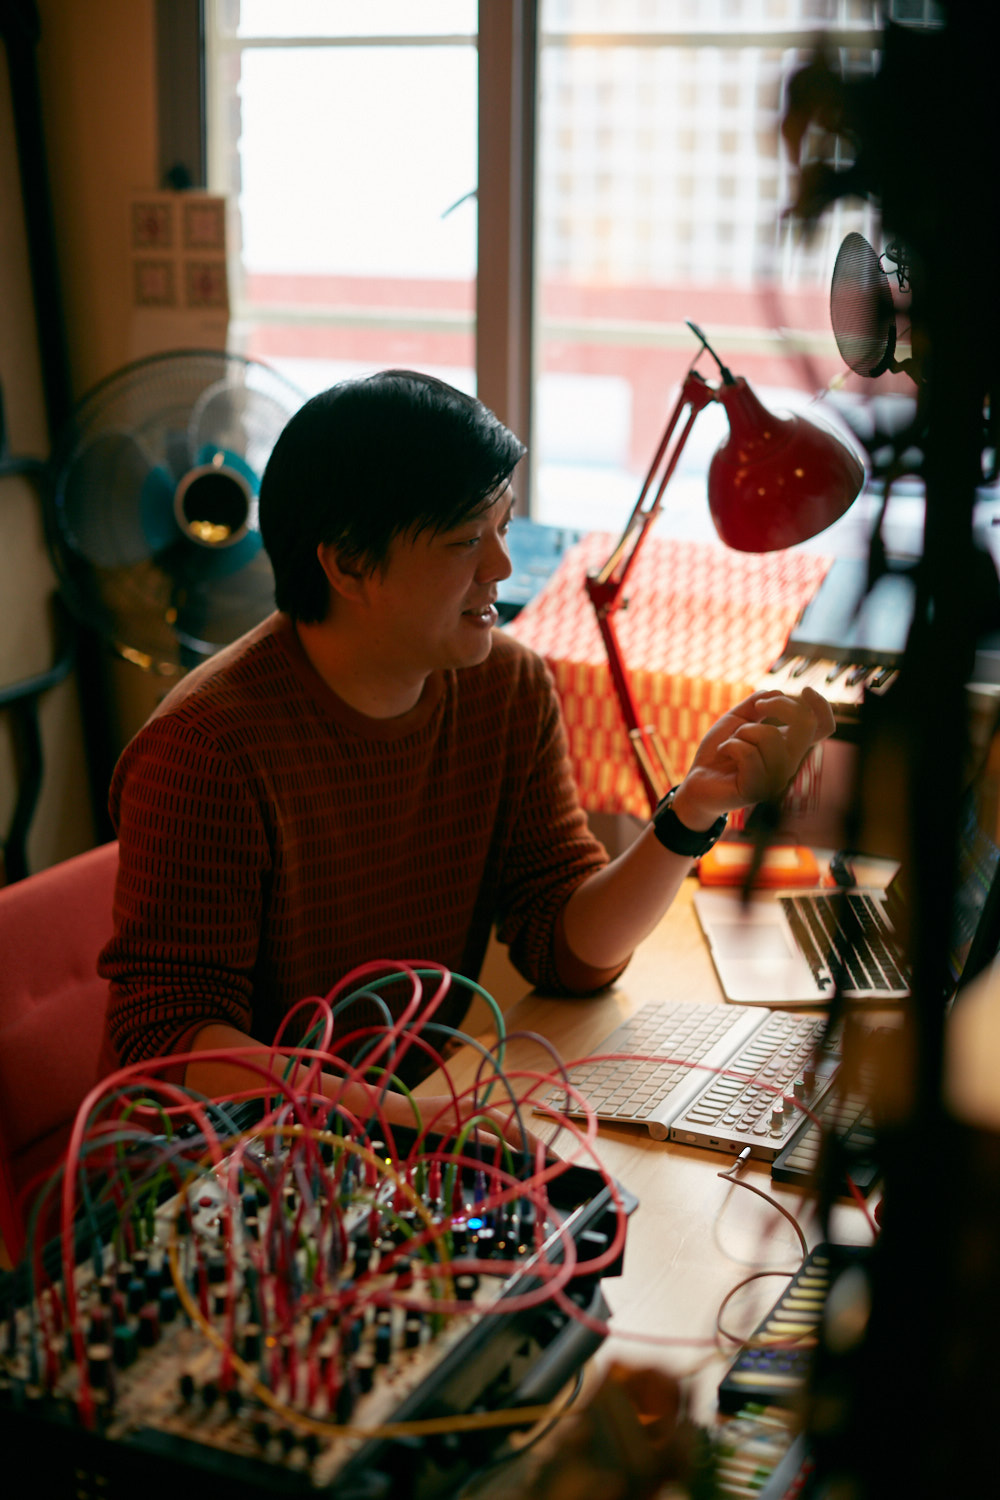 Audio producer, Jon Tjhia, sitting at a desk with computers and technical audio equipment. The audio equipment has lots of red and green wires and is sitting in the bottom-left of the shot. Jon is wearing a red long sleeved top and has short dark hair. There is a red lamp next to him and a blue fan in the background.